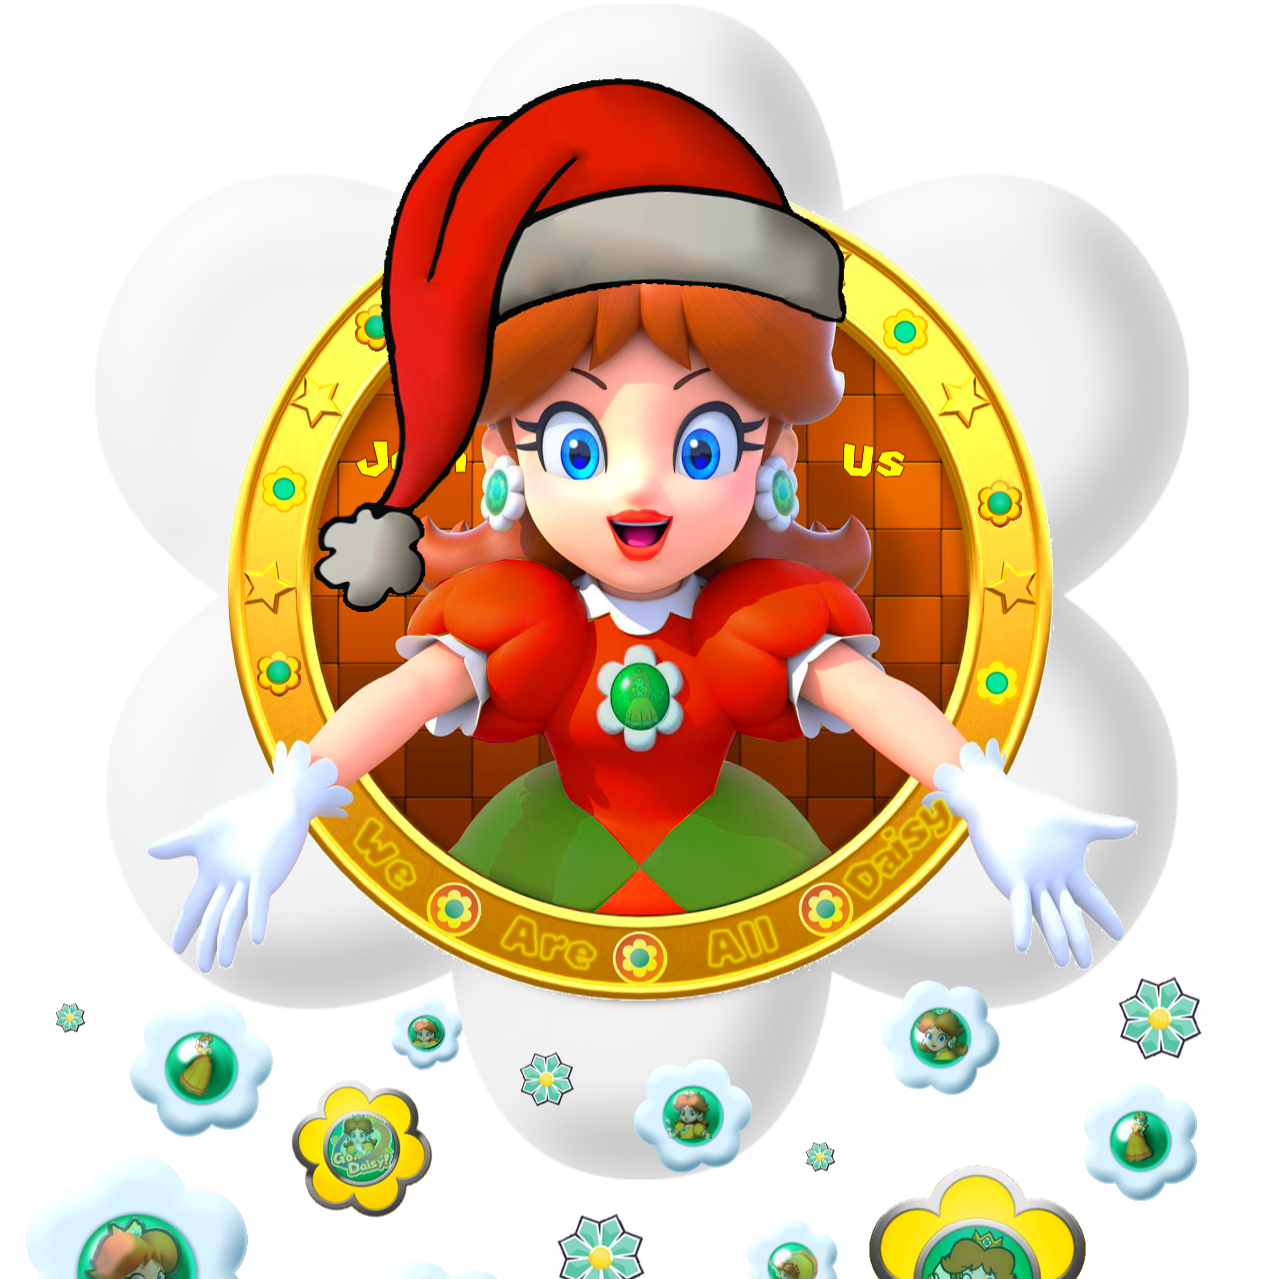 Christmas Mario Png.We Are Daisy Changes Of Skin For December Wearedaisy